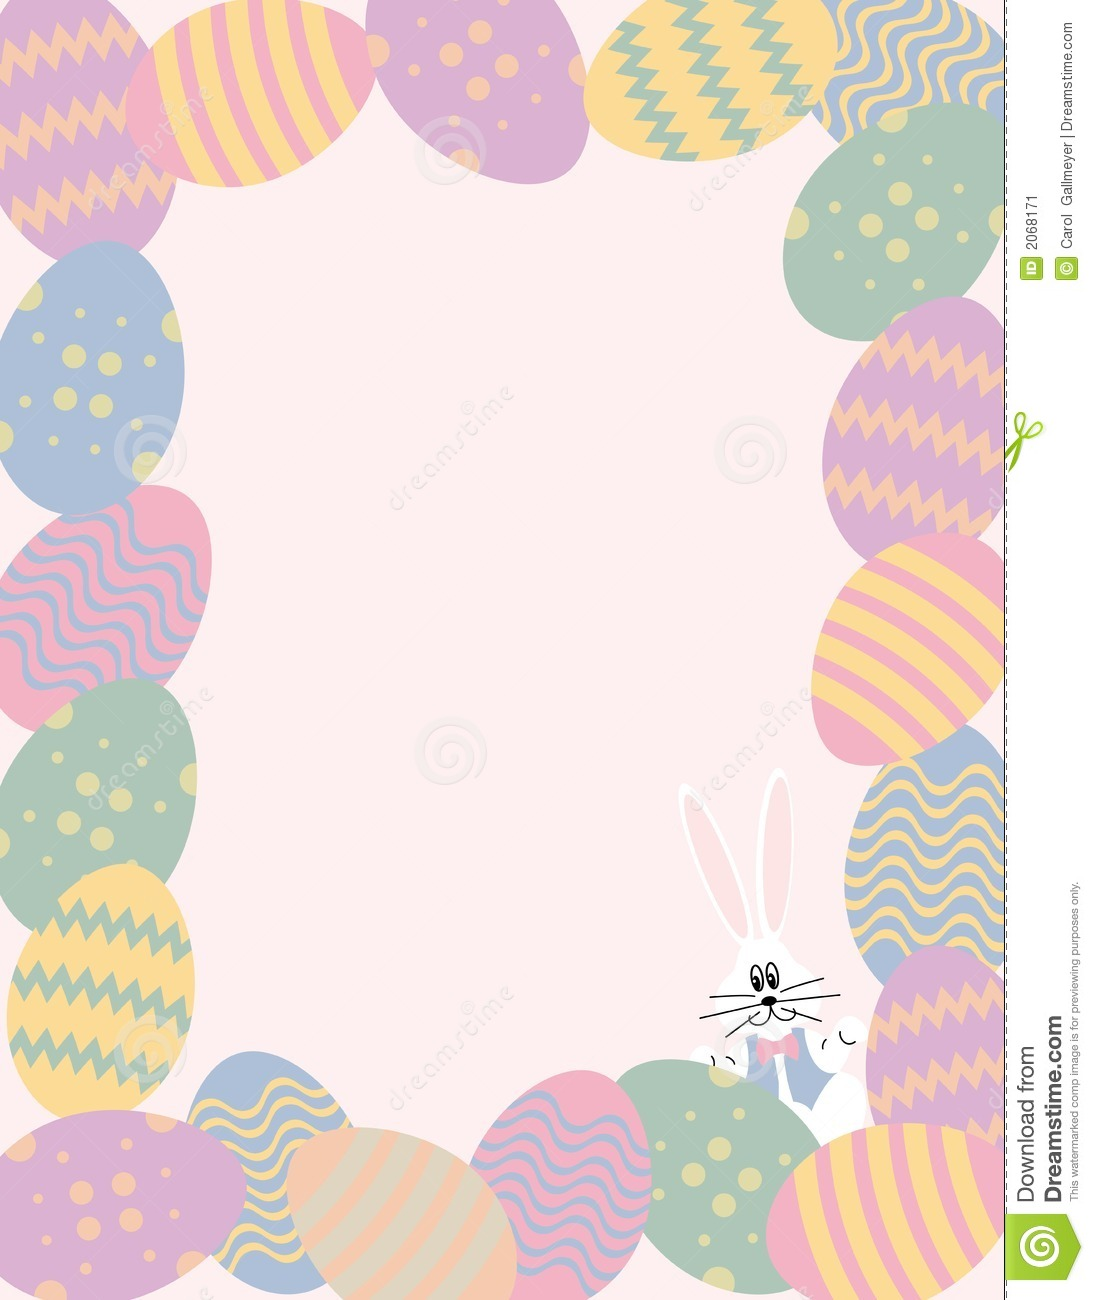 Easter Egg Border With Bunny